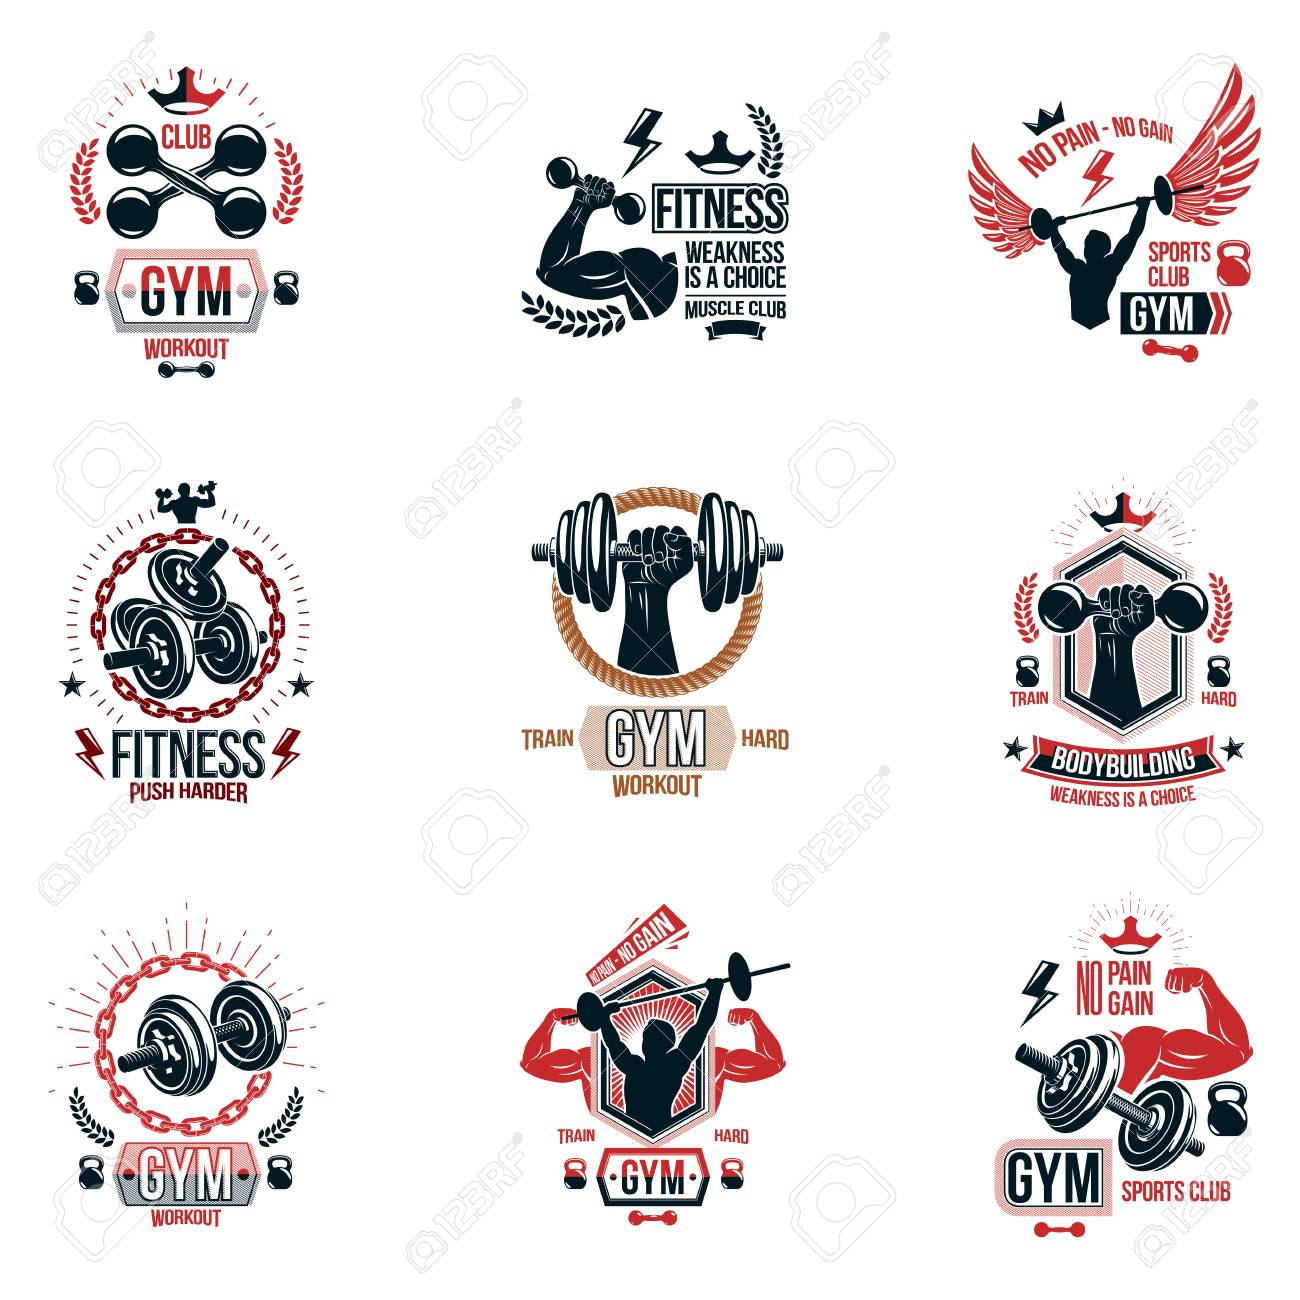 Fitness workout theme vector and inspiring posters collection